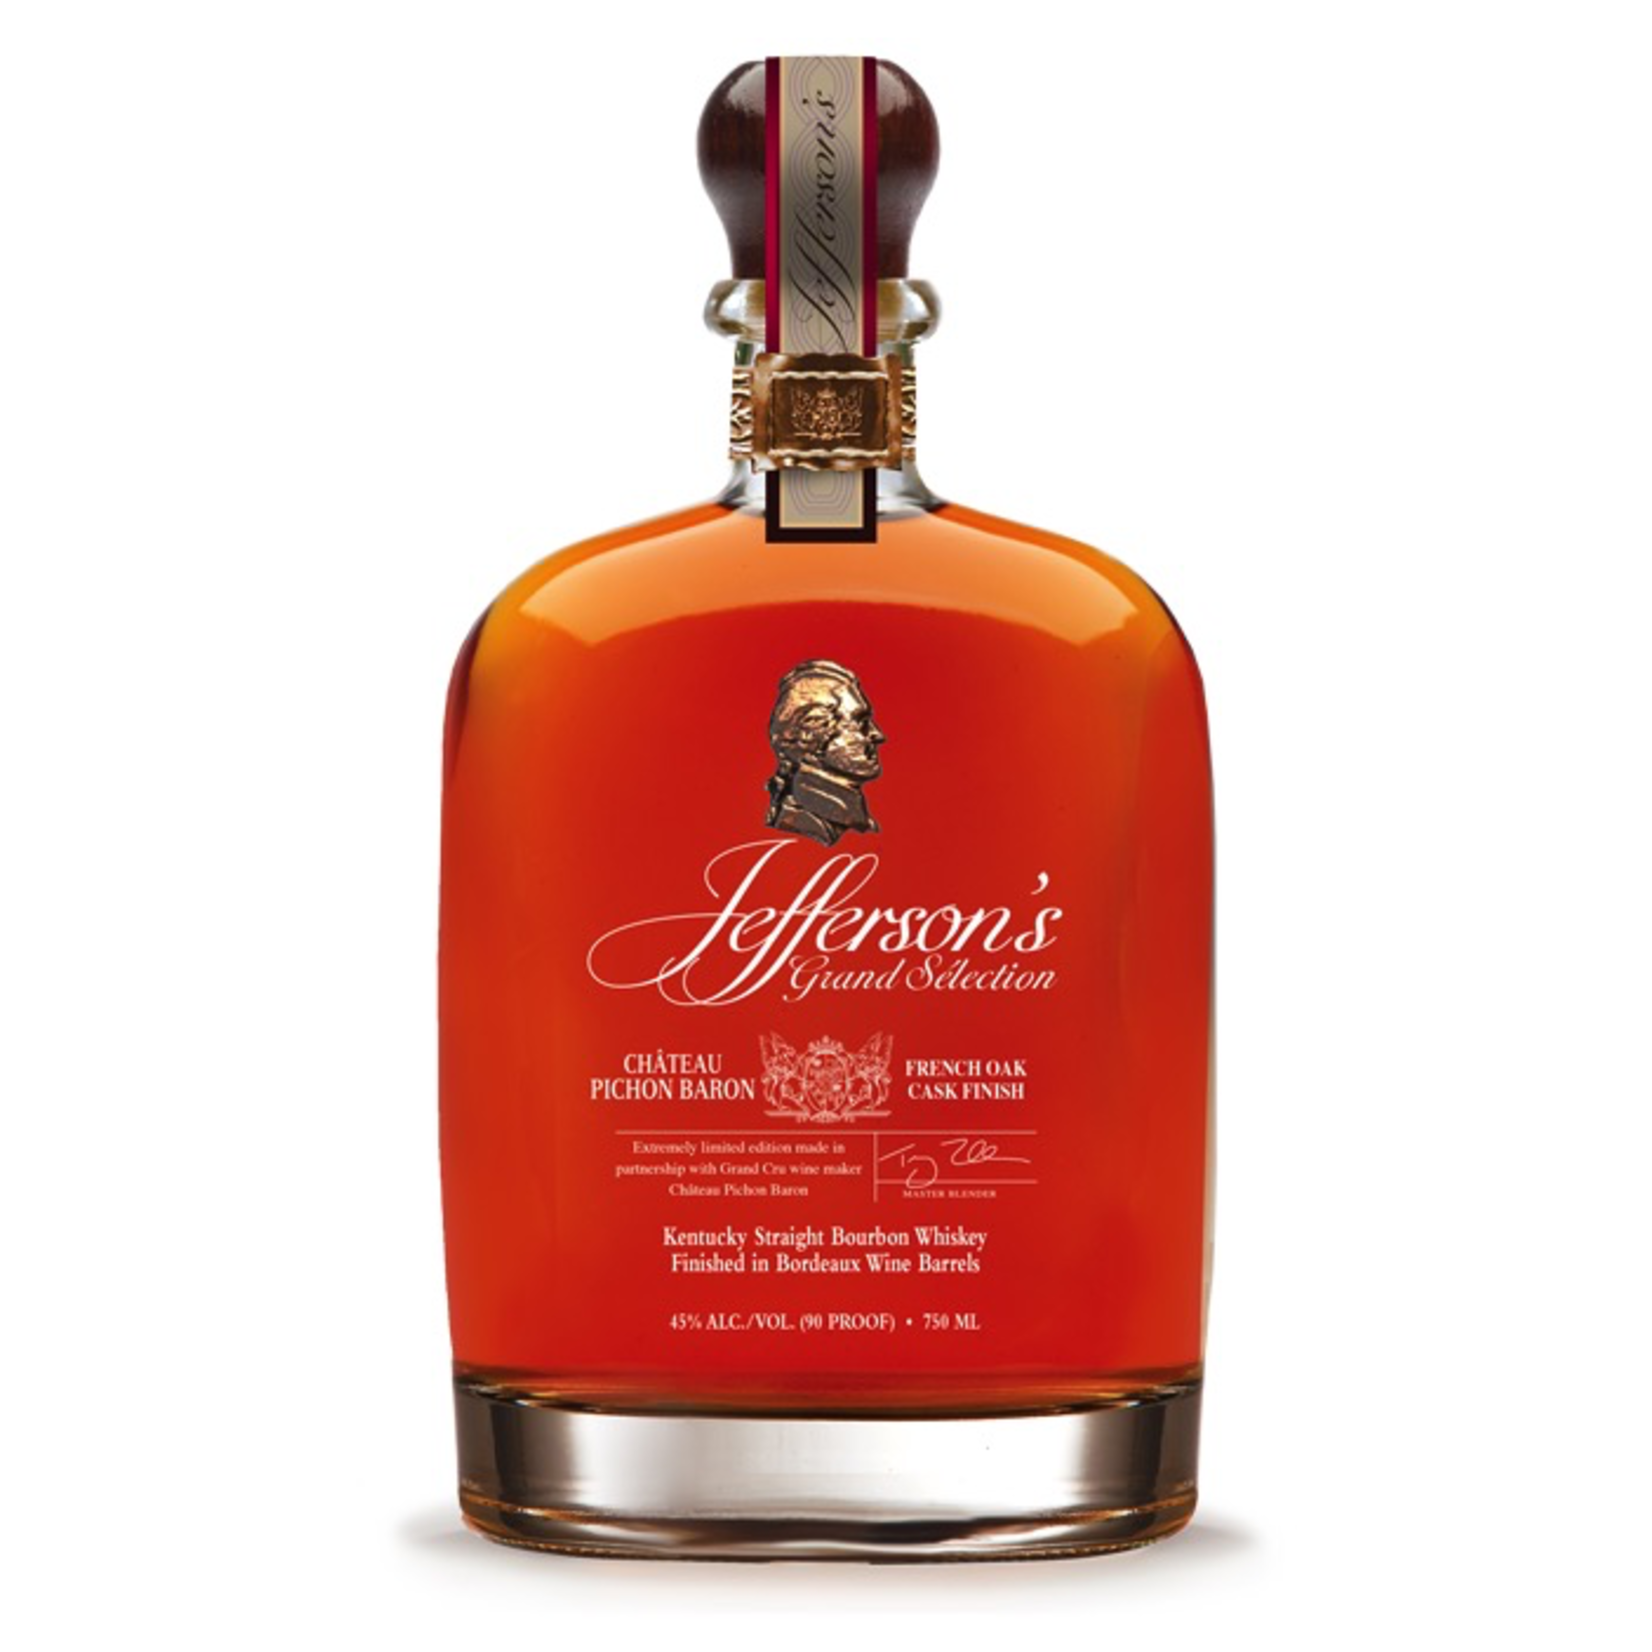 Spirits Jefferson's Bourbon Grand Selection Chateau Pichon Baron Cask Finish